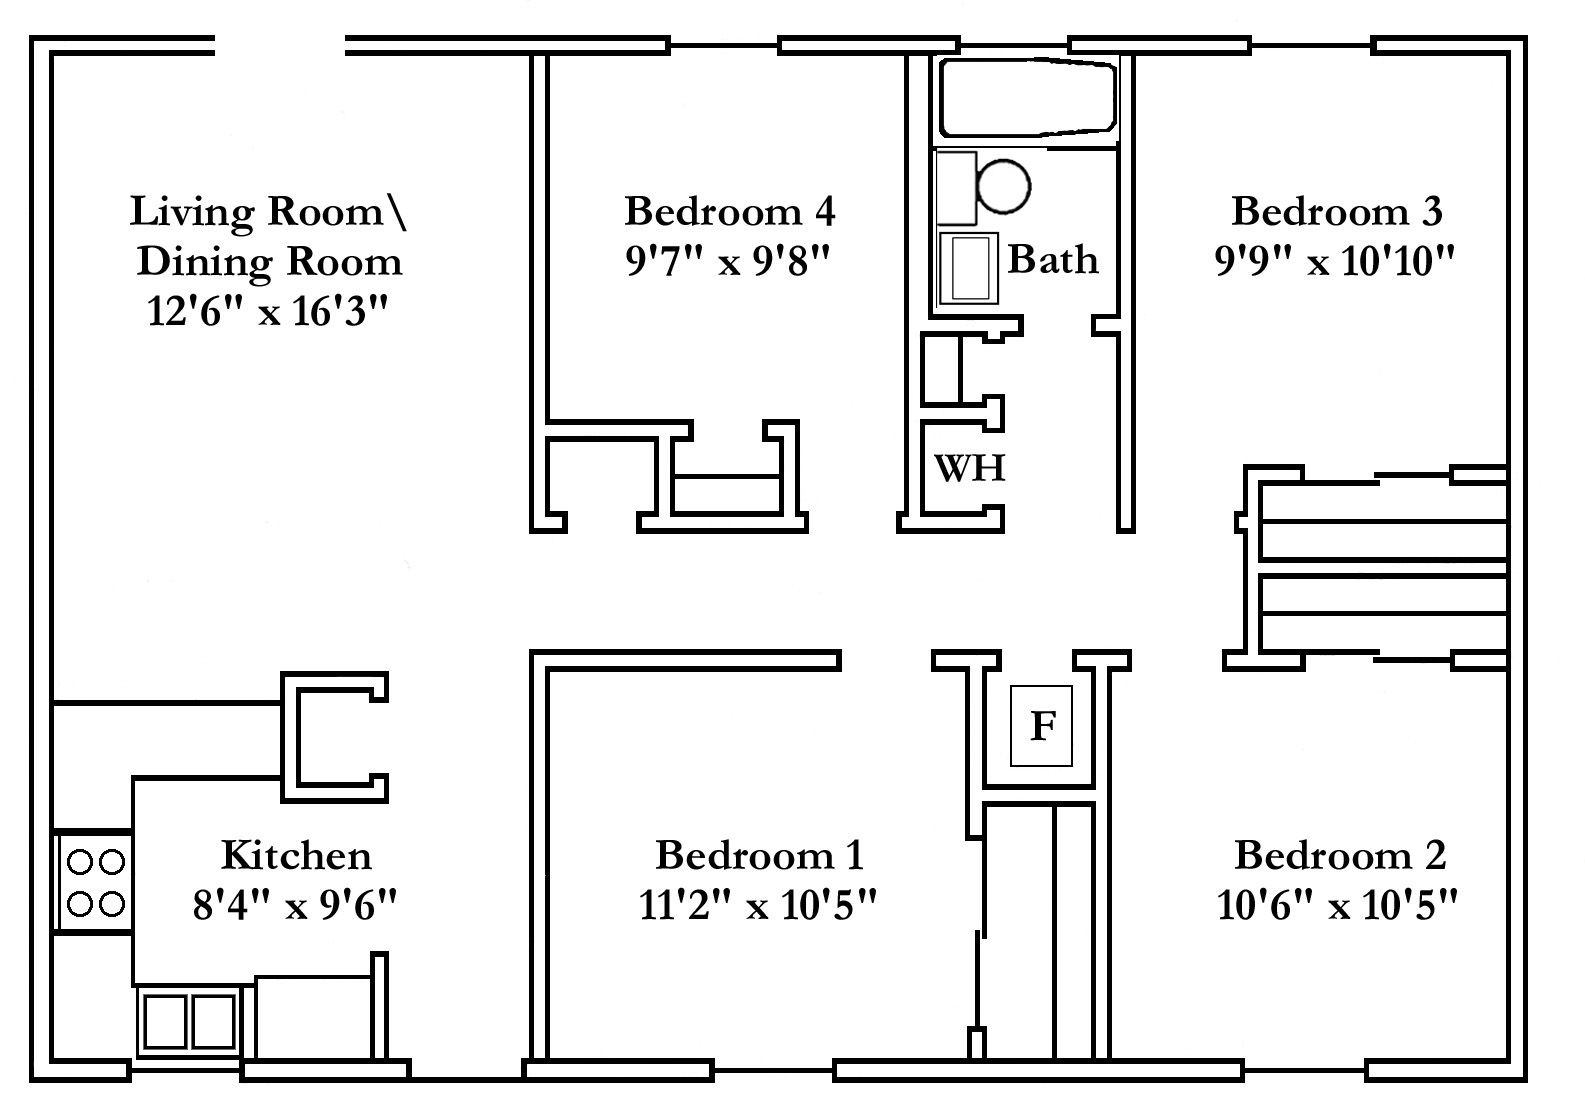 Small Bedroom House Plans Free Typical Floor Plans Powering